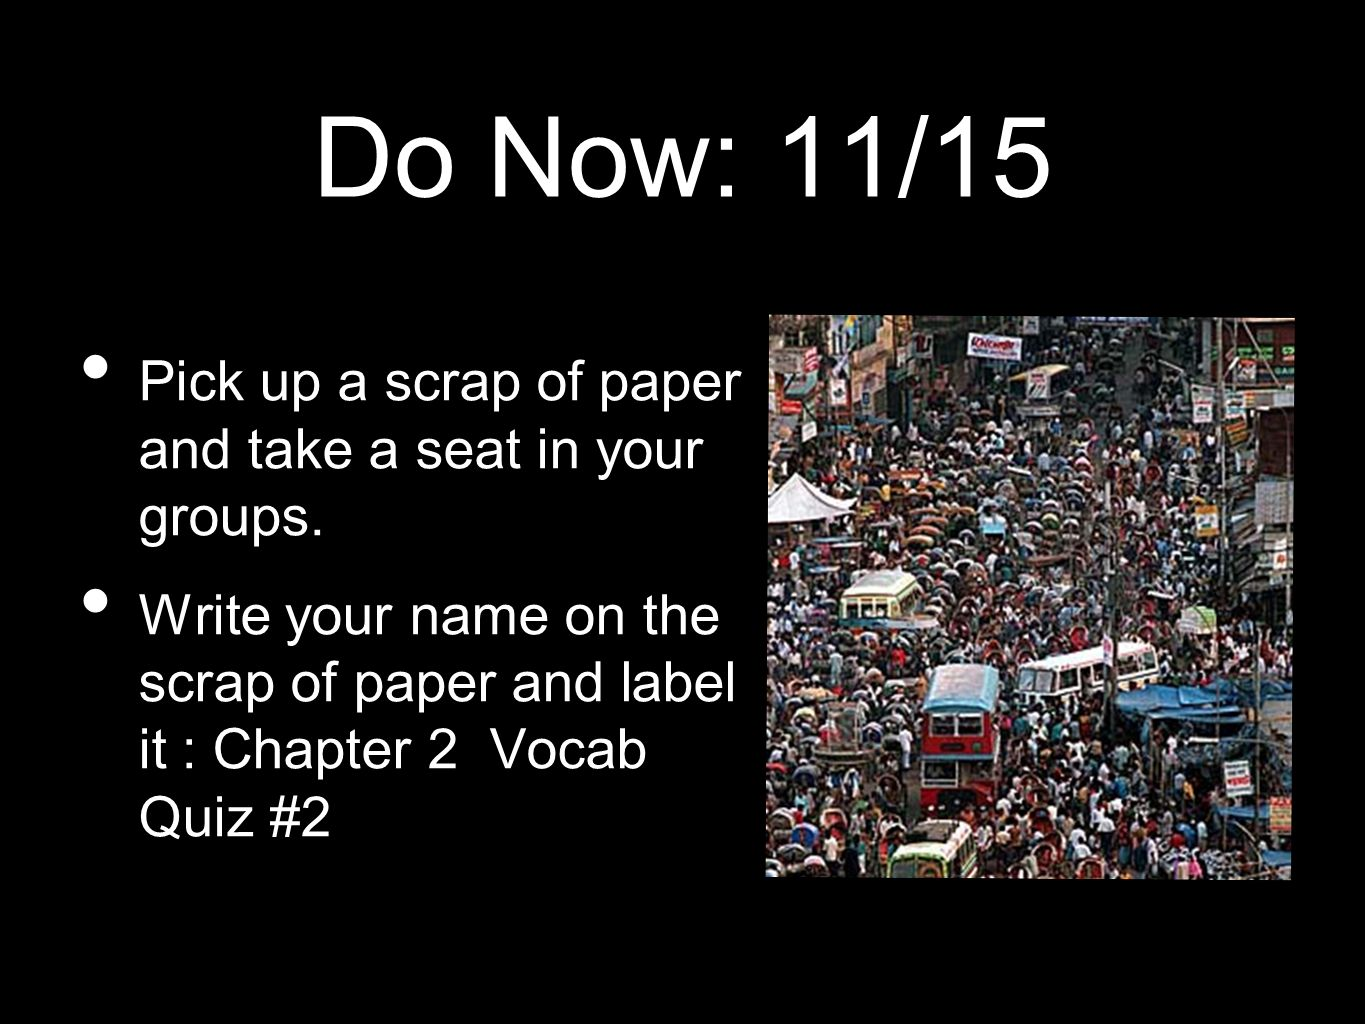 Do Now: 11/15 Pick up a scrap of paper and take a seat in your groups.